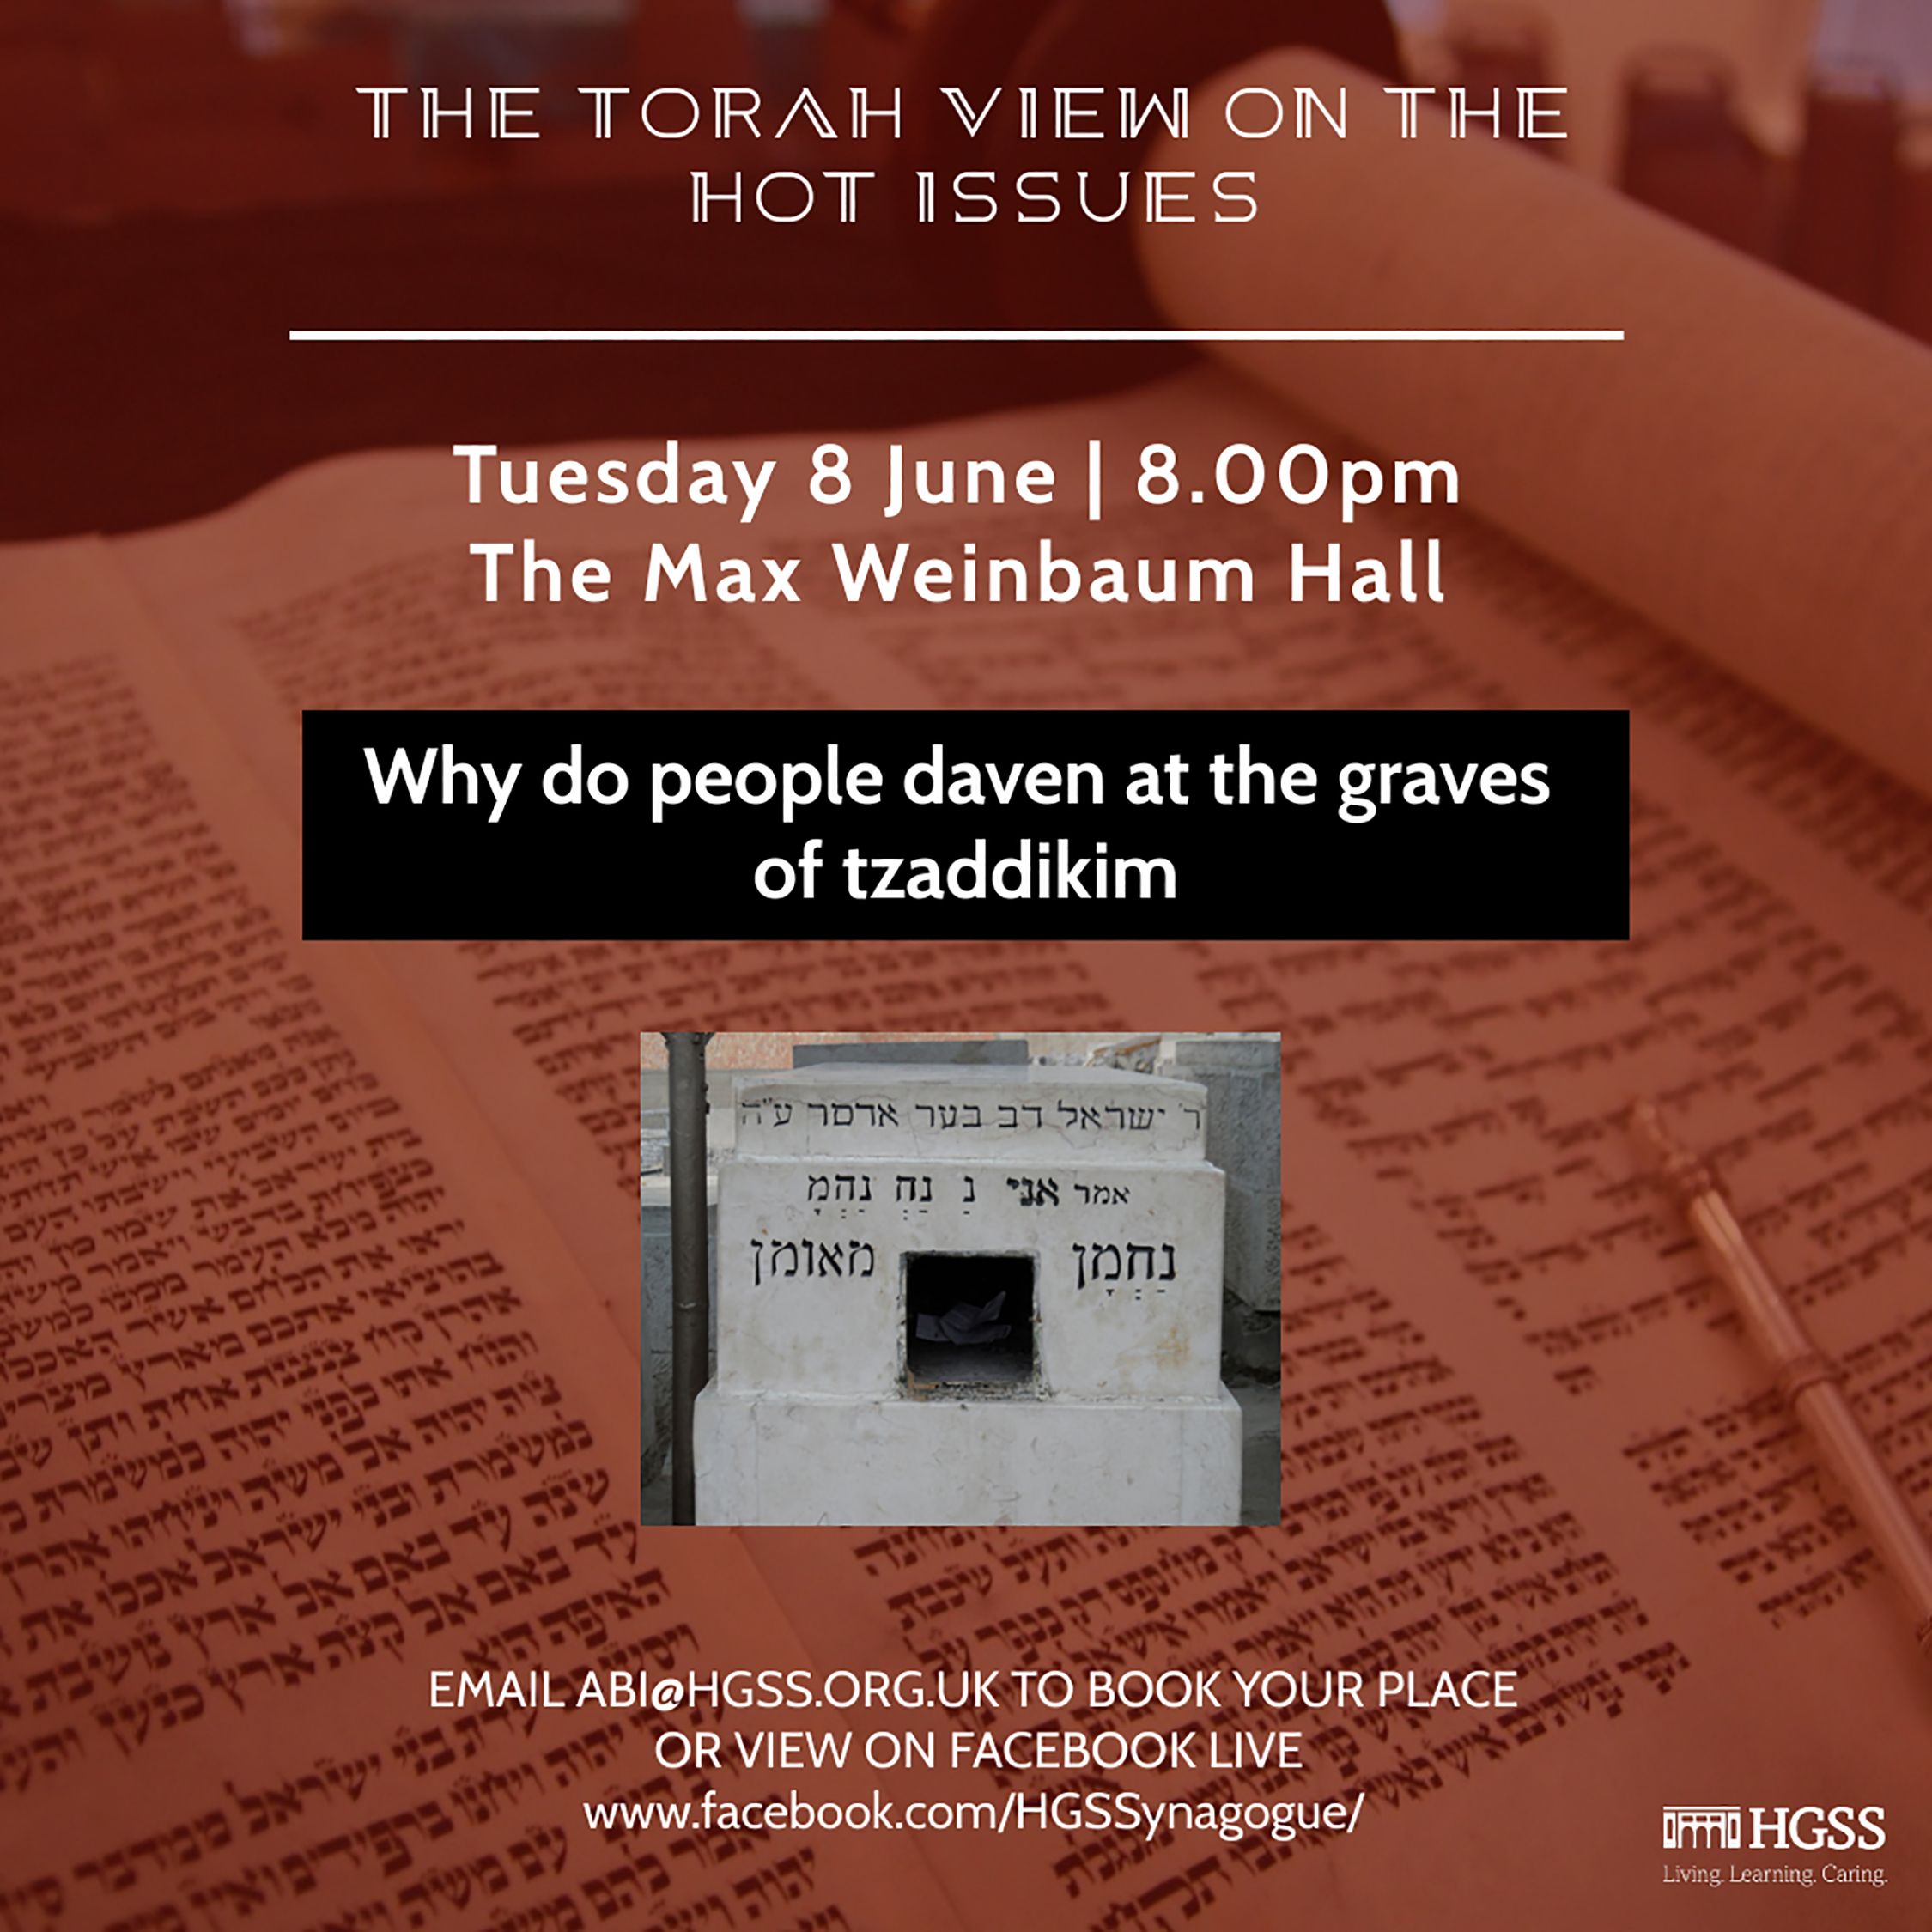 The Torah View on the Hot Issues @ The Marquee